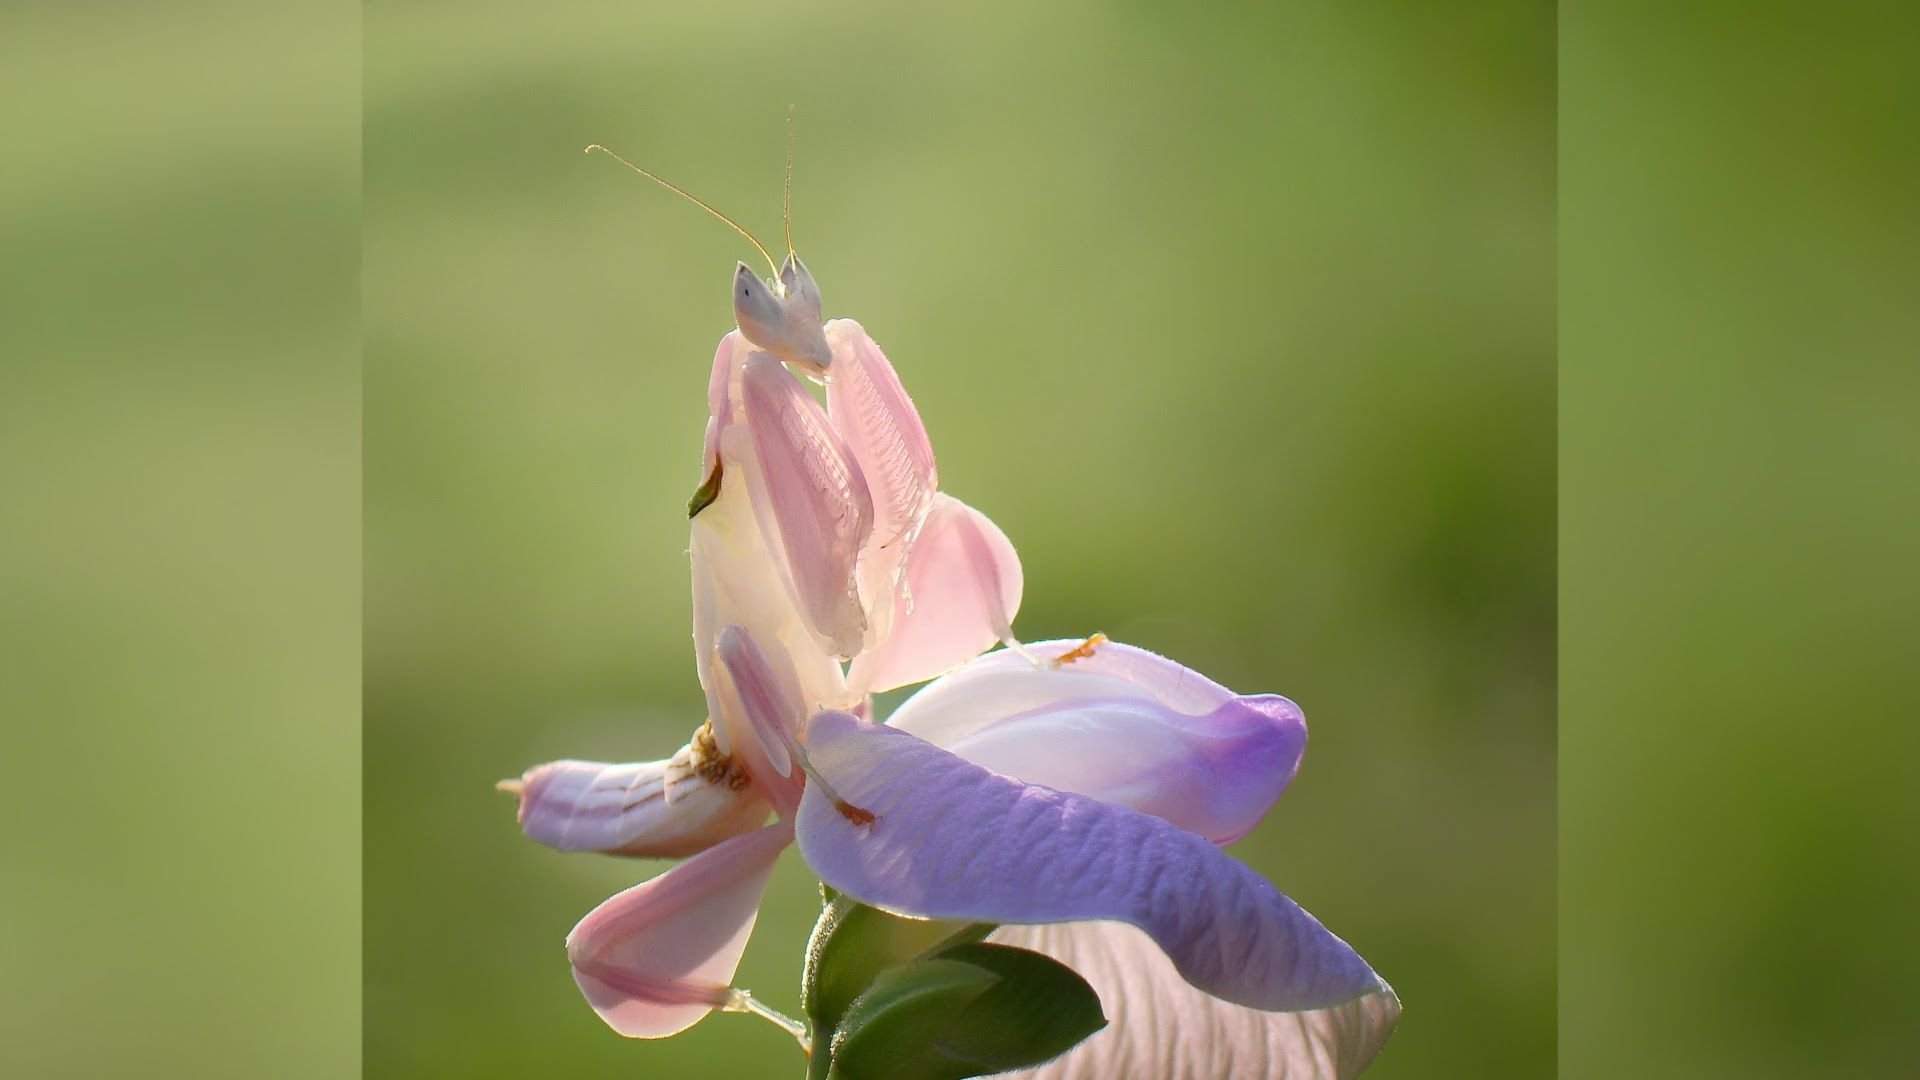 Insect Or Flower This Bug Is A Master Of Deception Orchid Mantis Orchids Flowers